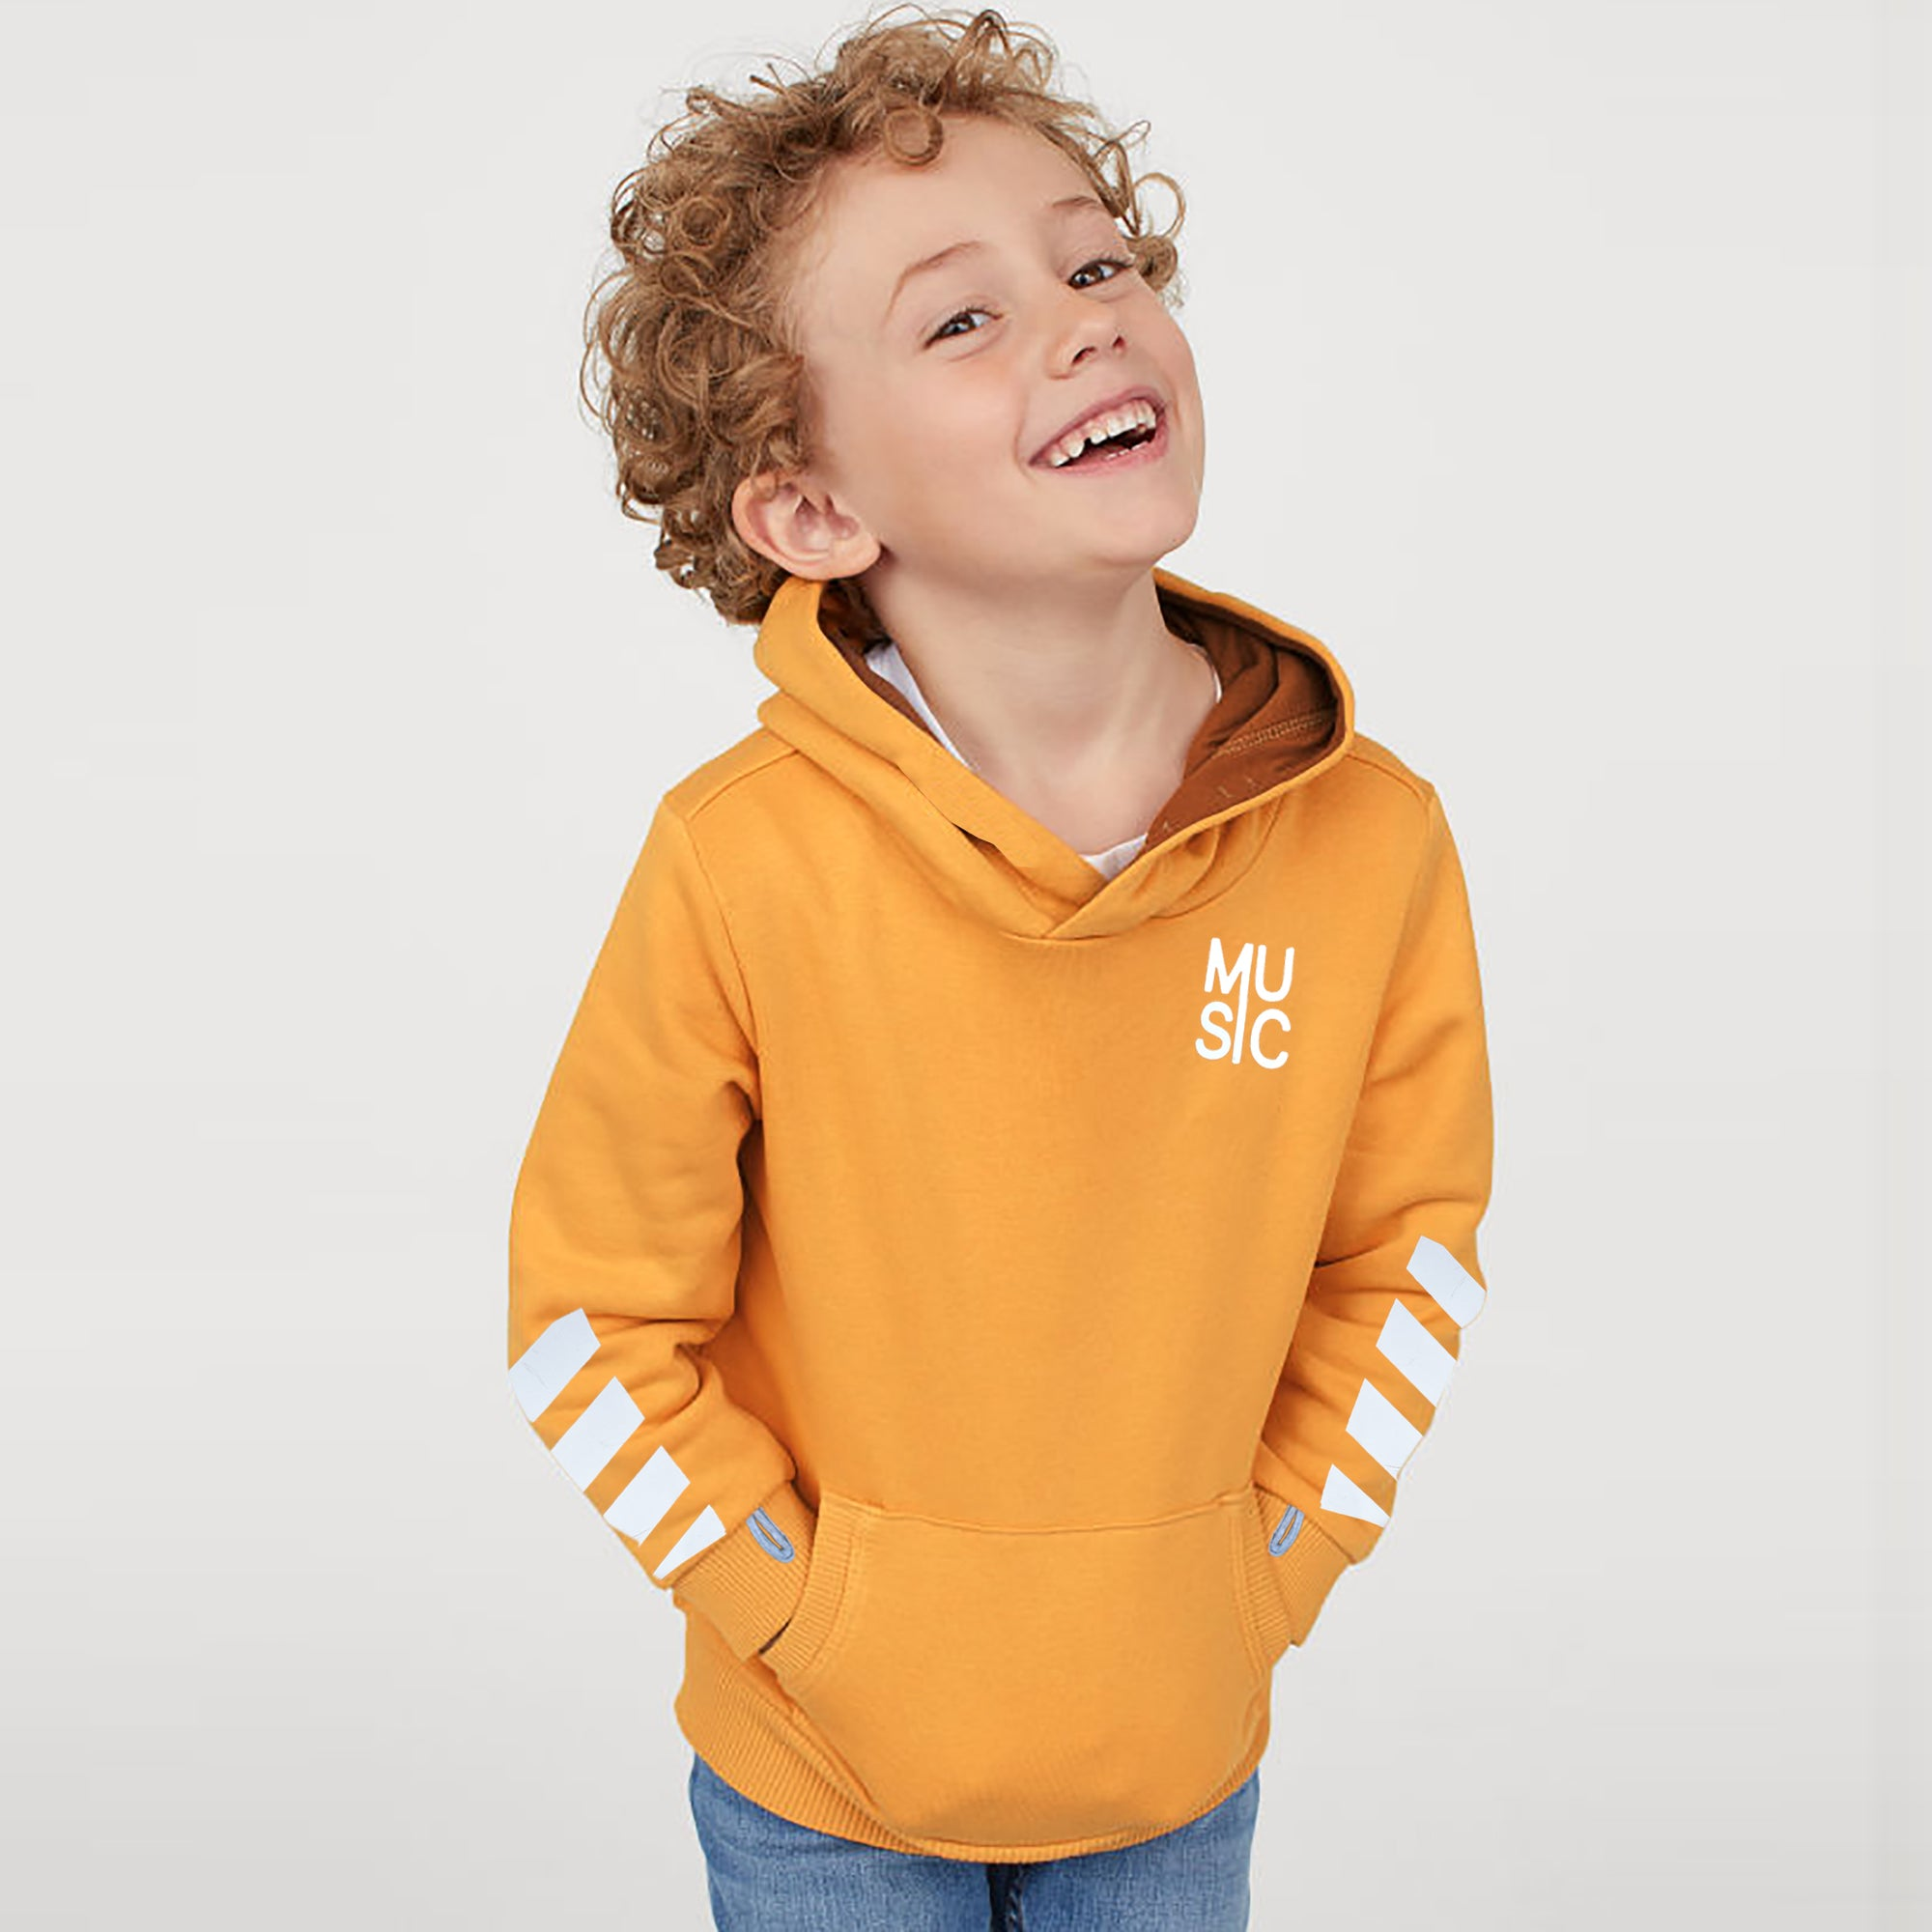 Next Terry Fleece Pullover Solid Hoodie For Kids-Yellow-SP825